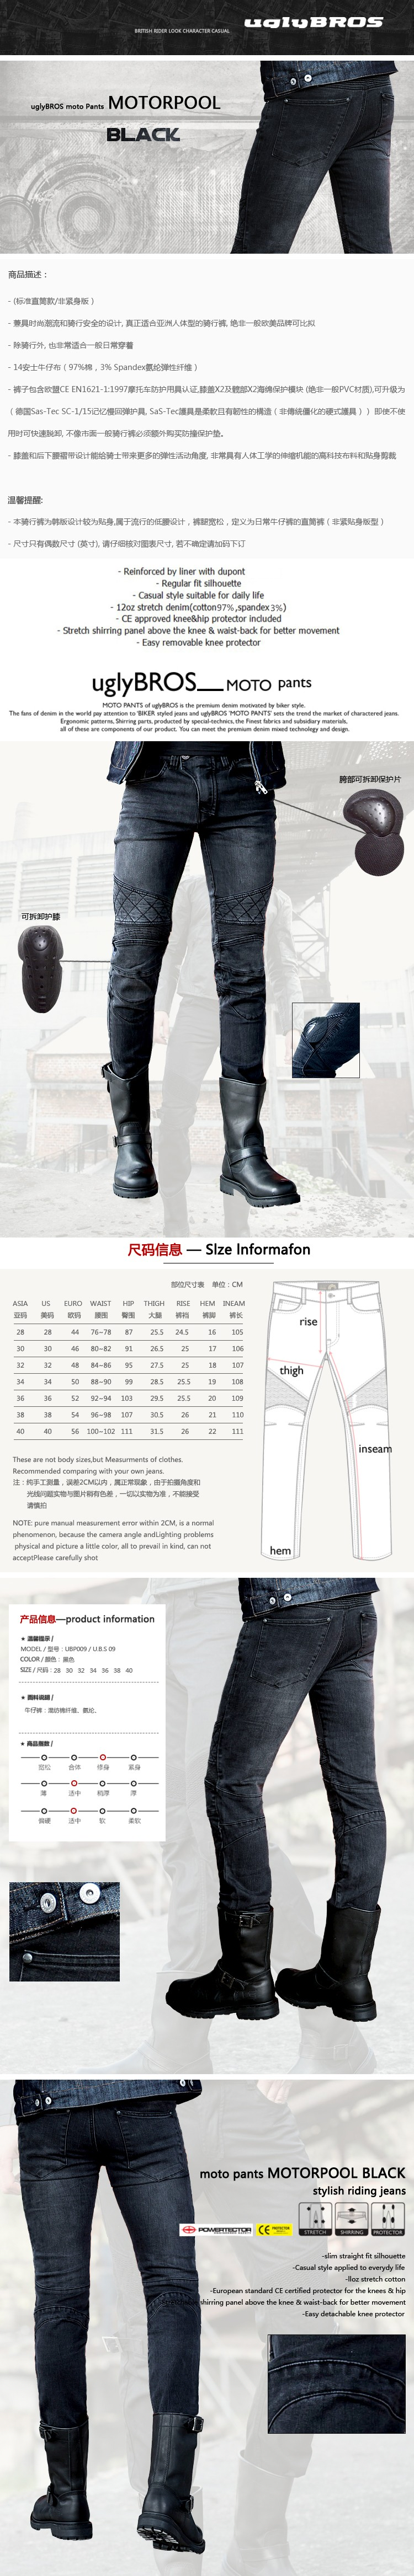 2016 The newest uglyBROS ton up pants Motorcycle jeans Road motorcycle riding jeans four sets of protective gear man pants